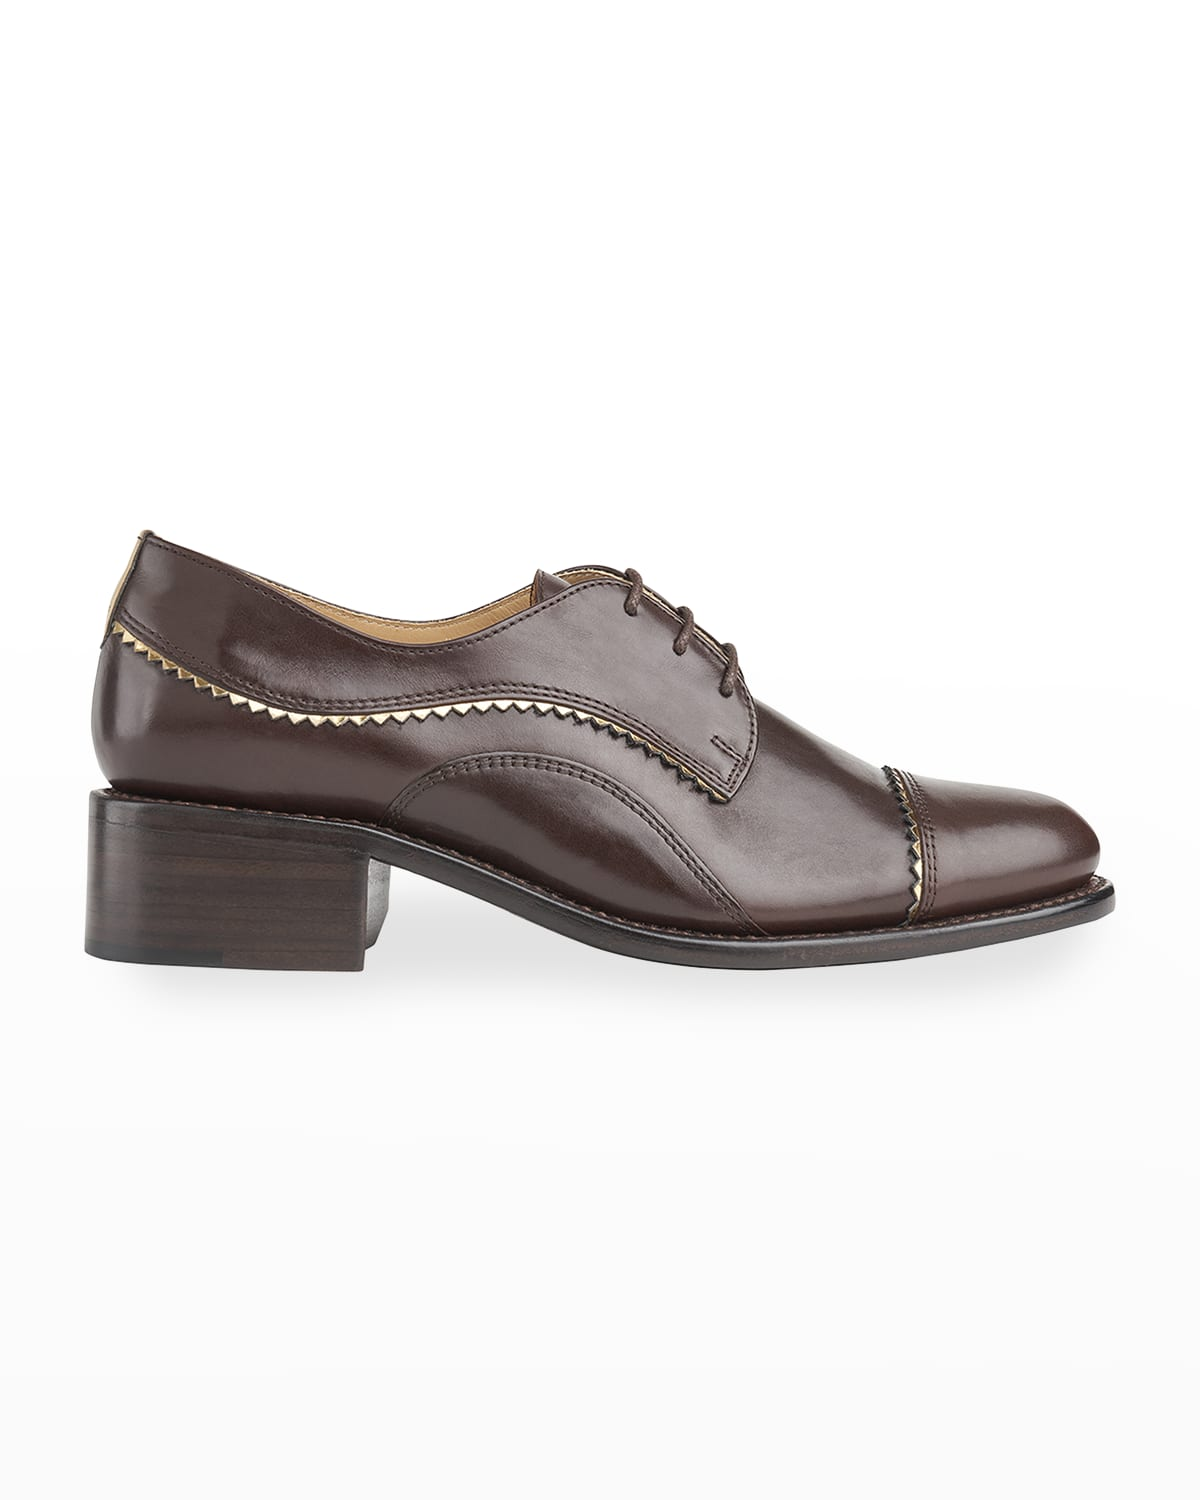 Ms. Neale Leather Loafers